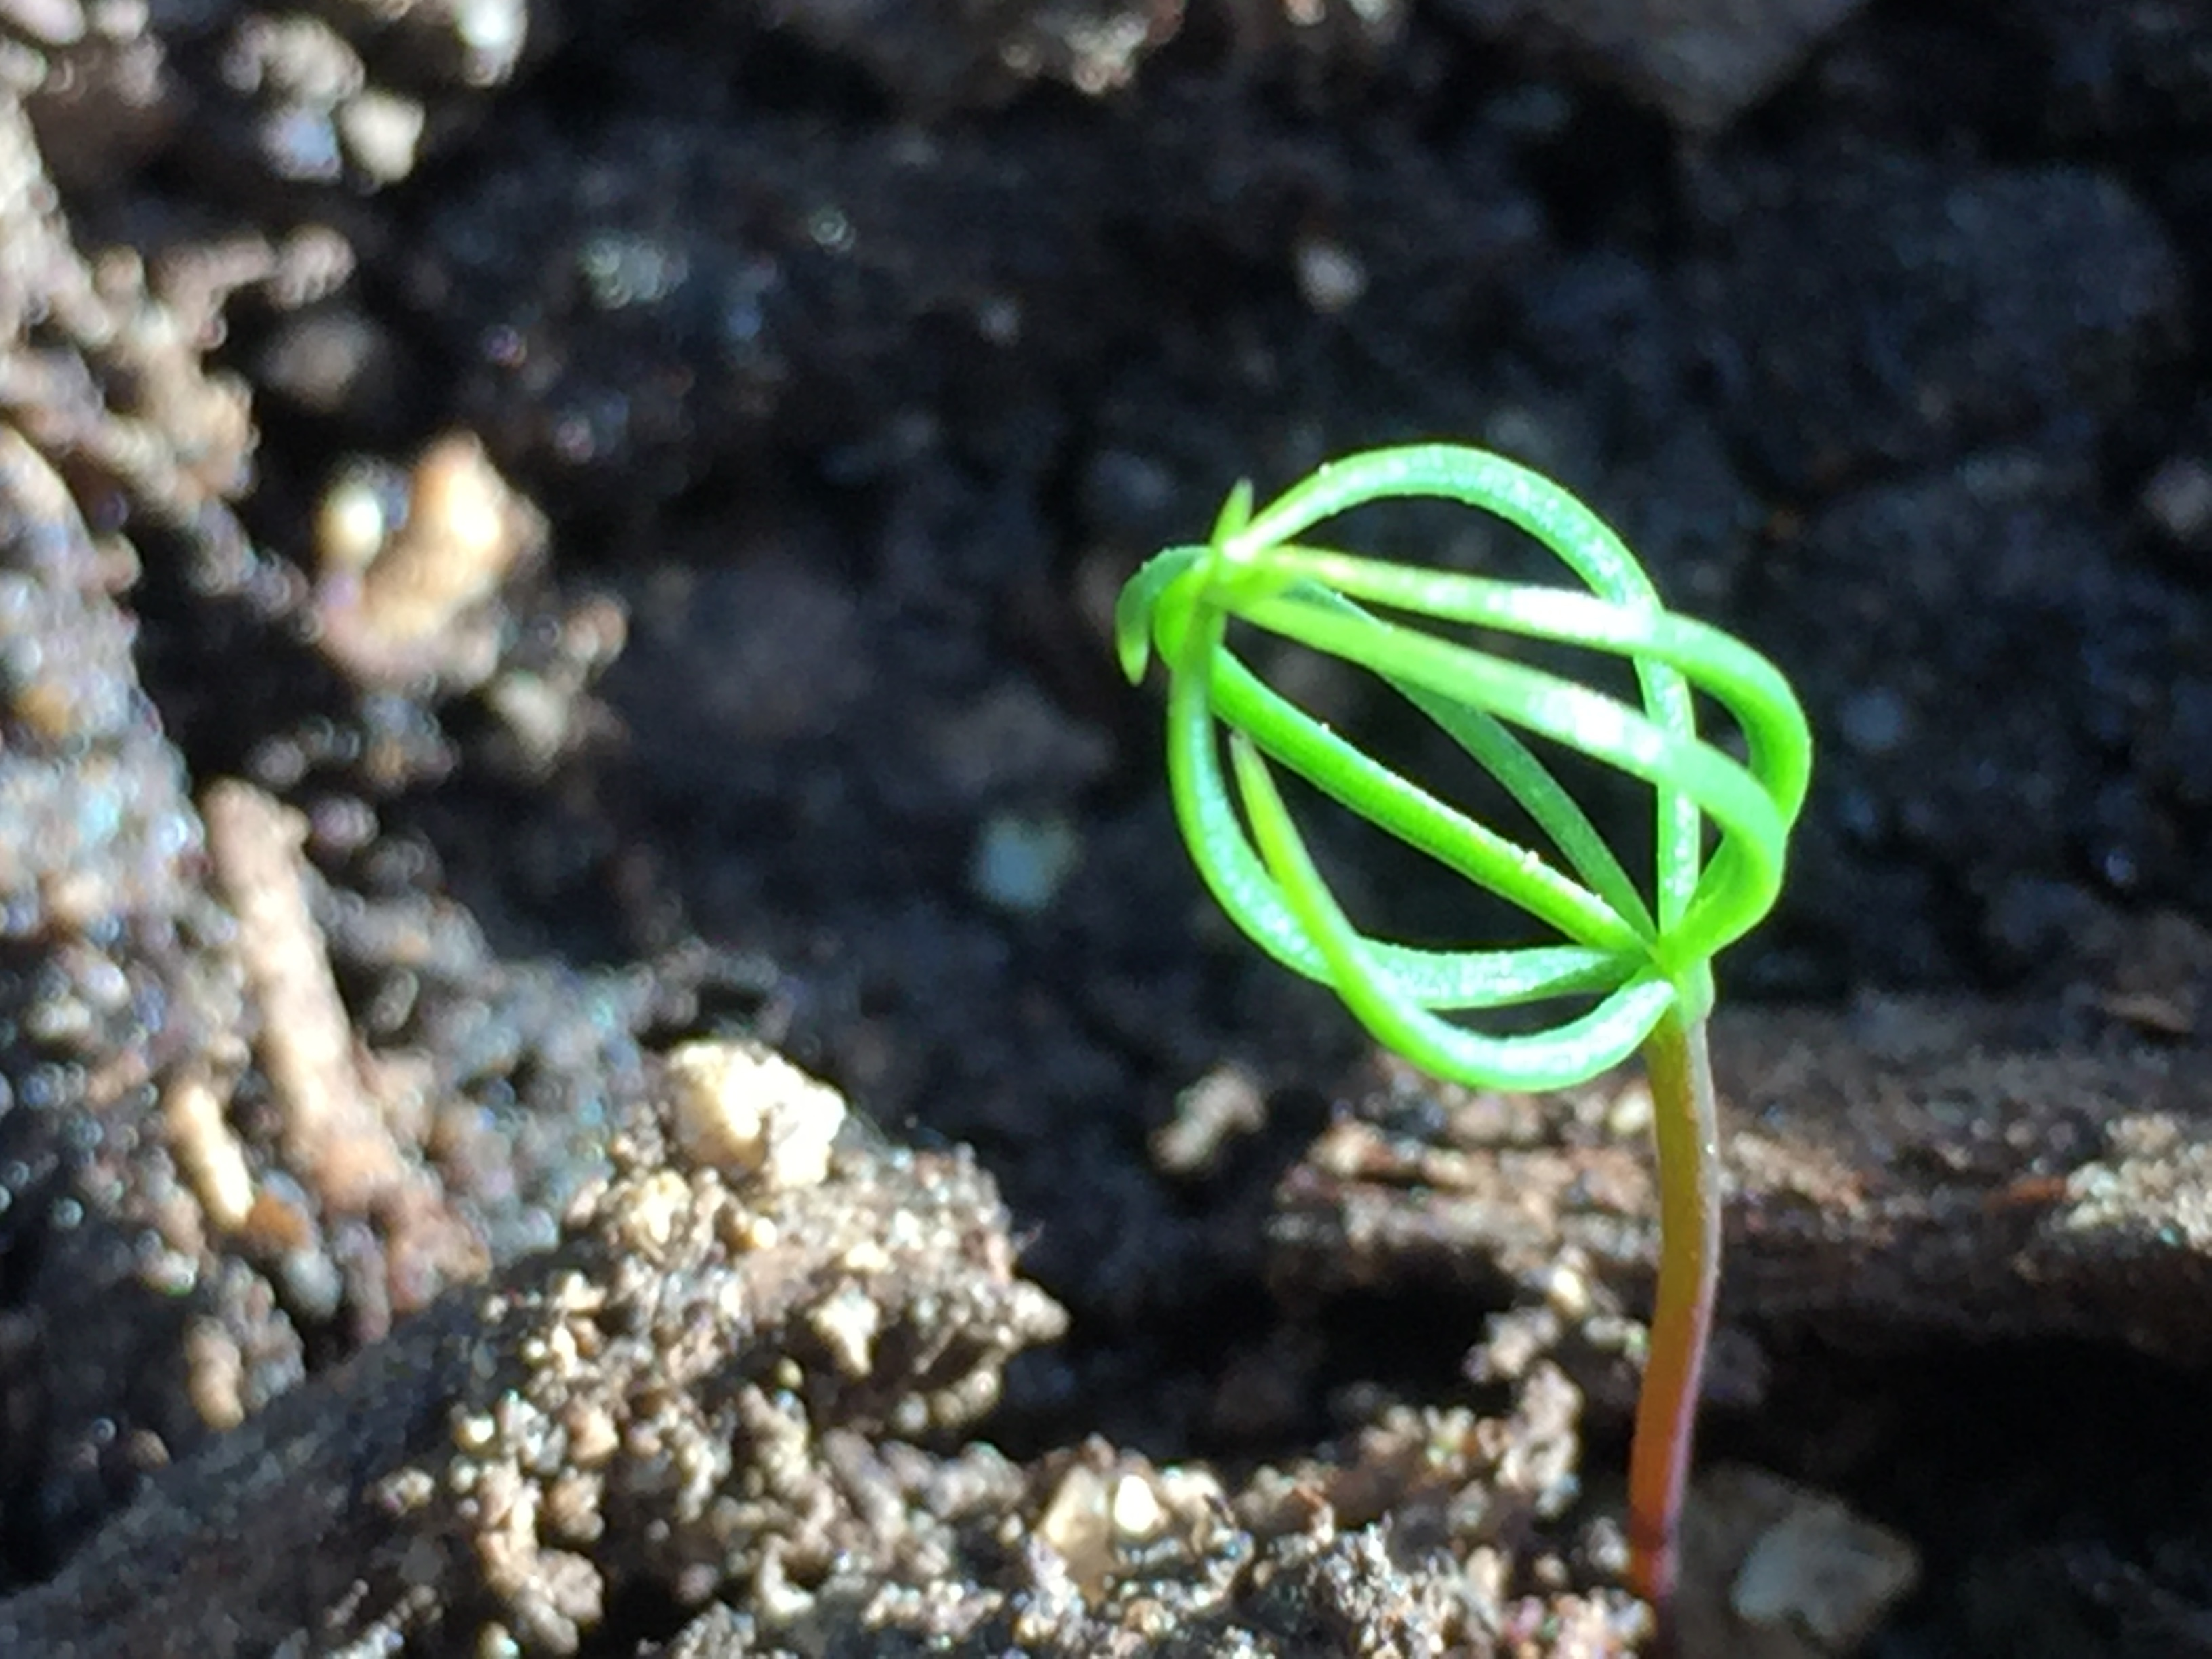 Pine tree sprouts photo